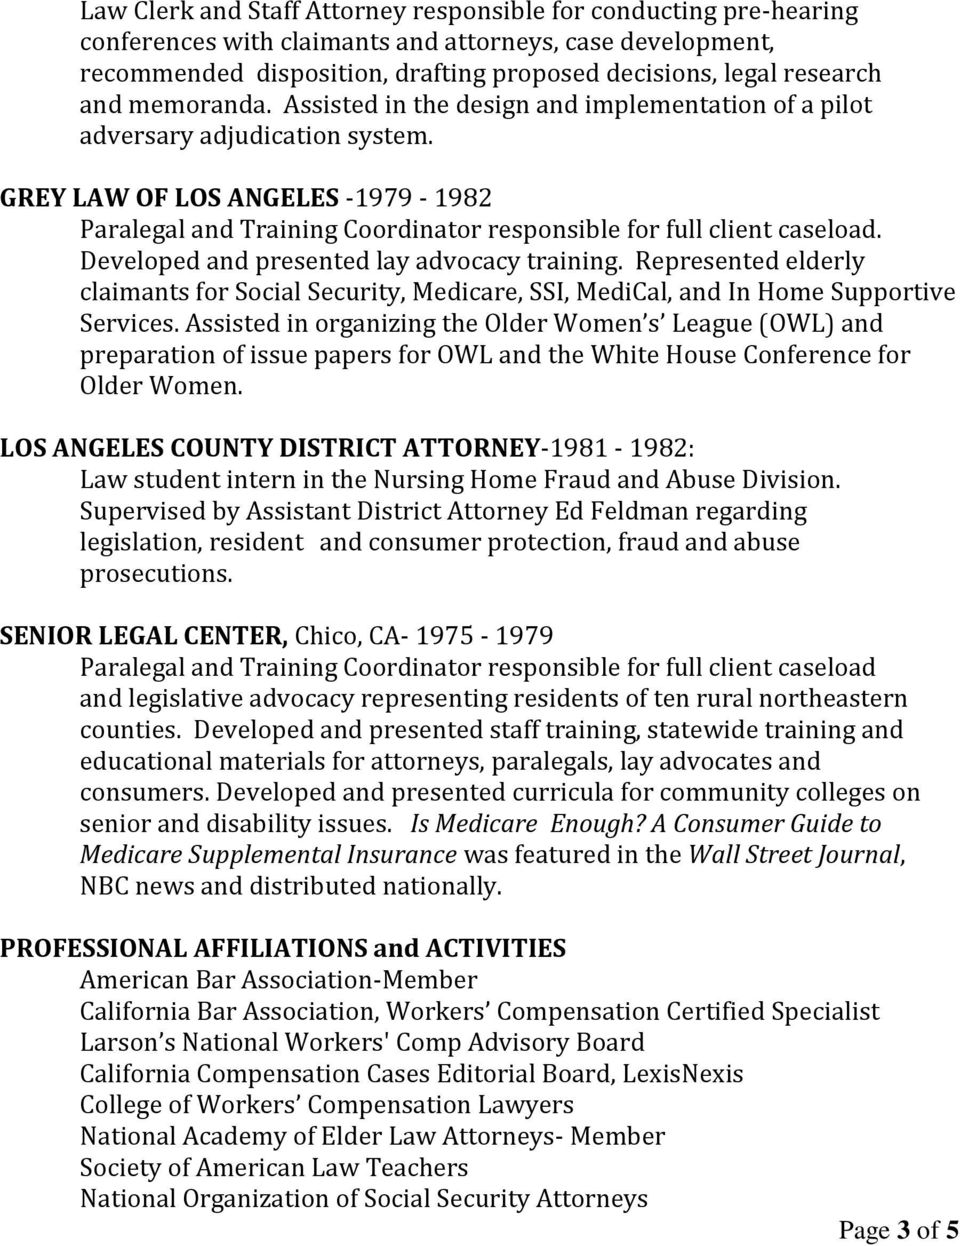 GREY LAW OF LOS ANGELES -1979-1982 Paralegal and Training Coordinator responsible for full client caseload. Developed and presented lay advocacy training.